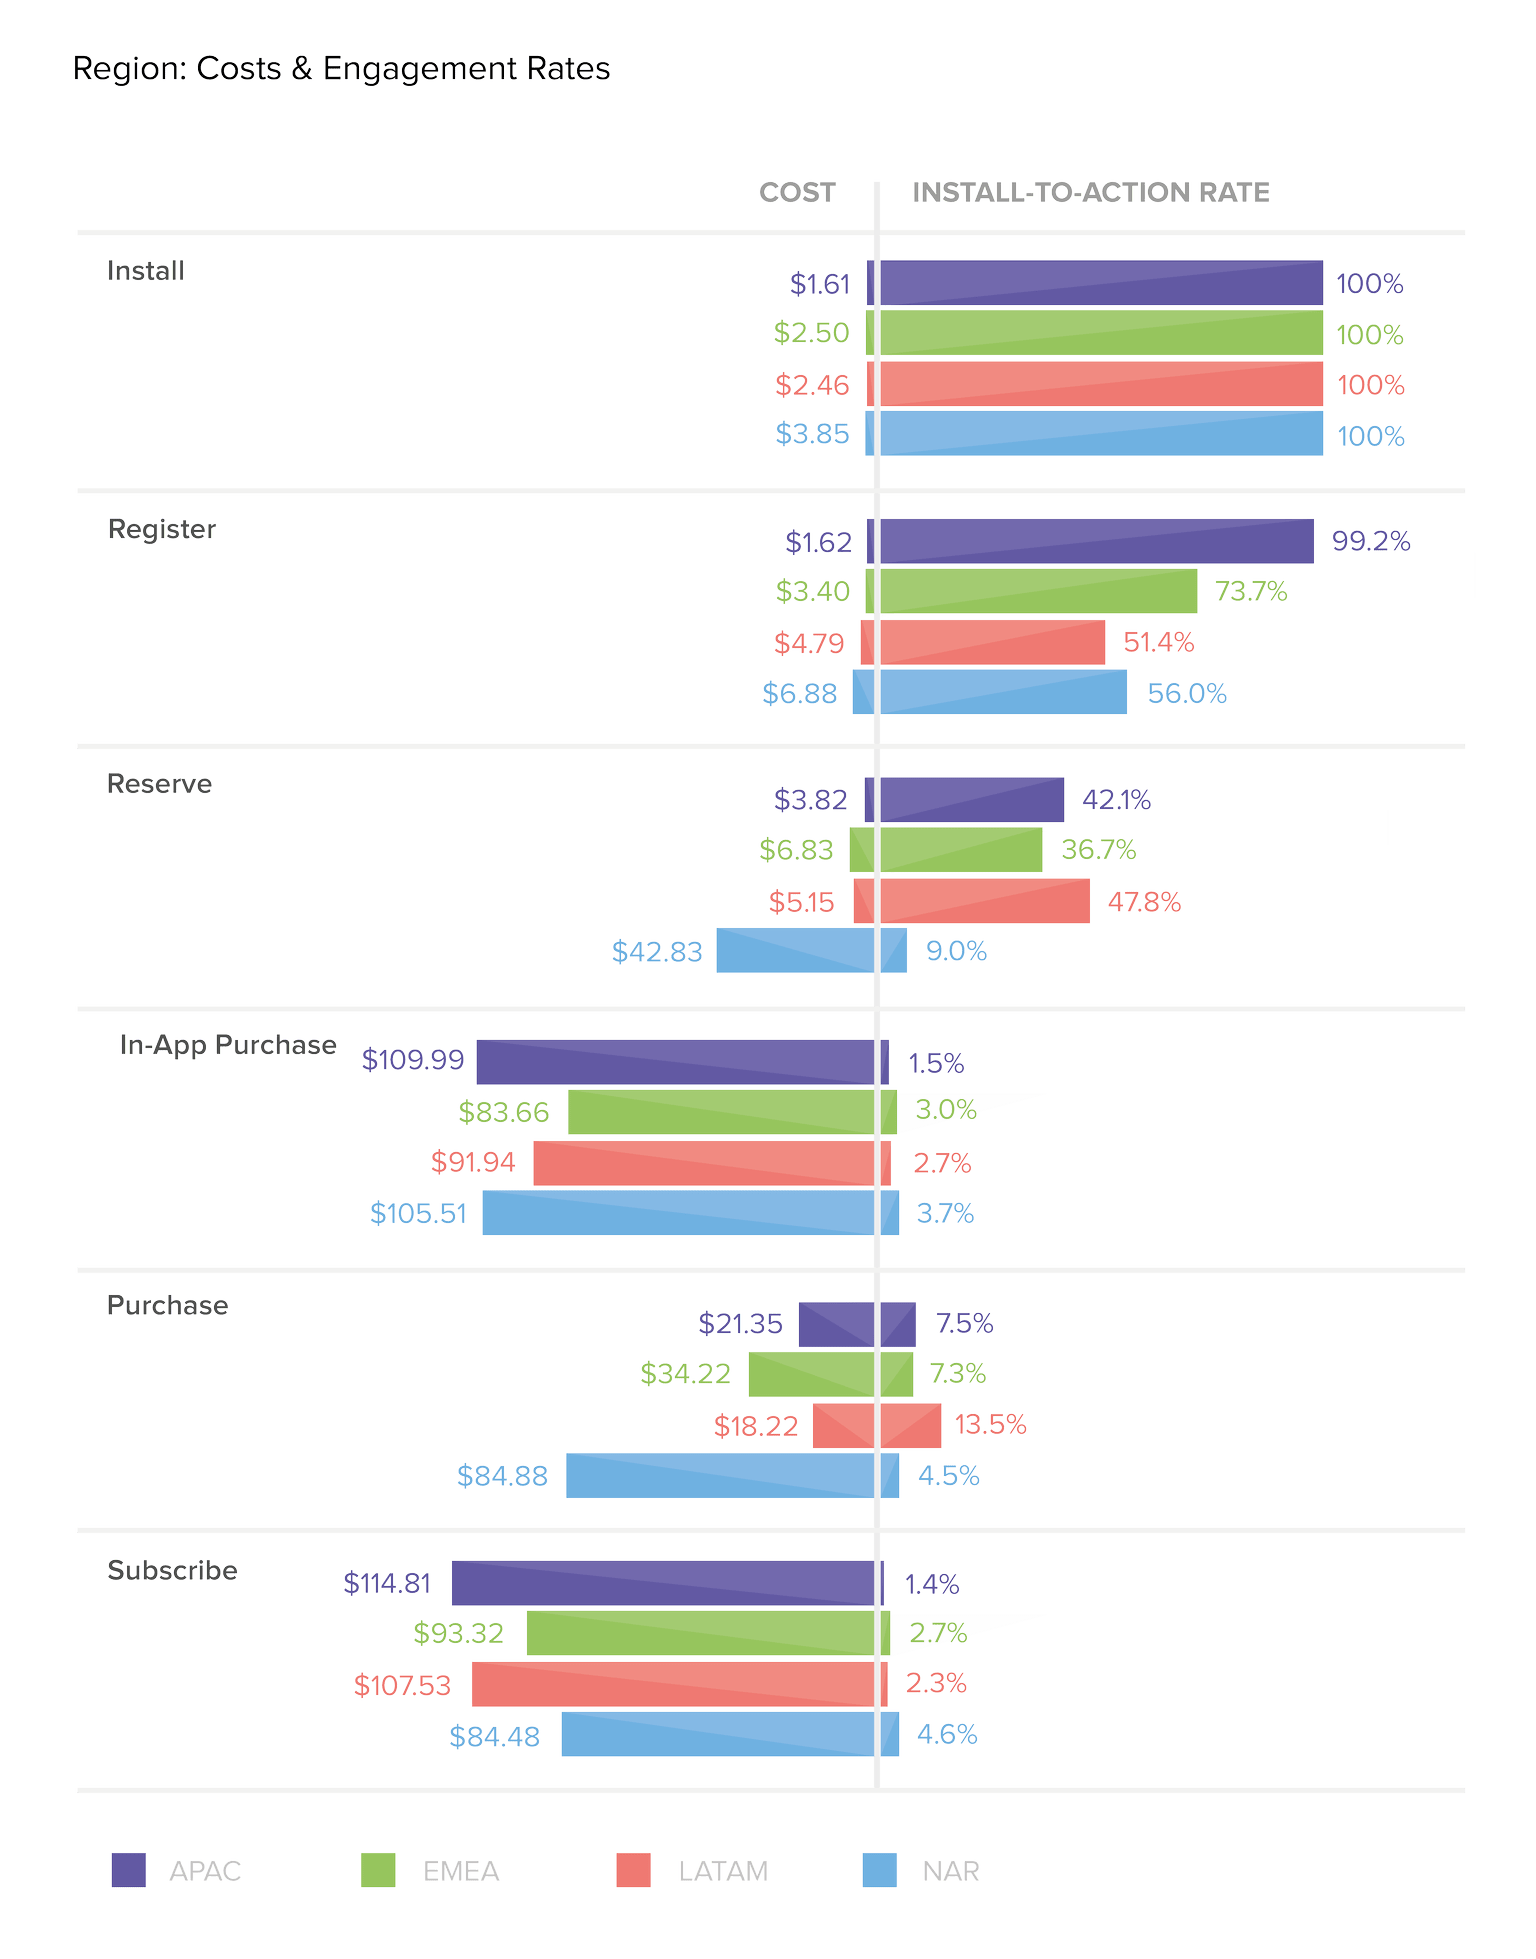 engagement rate by region